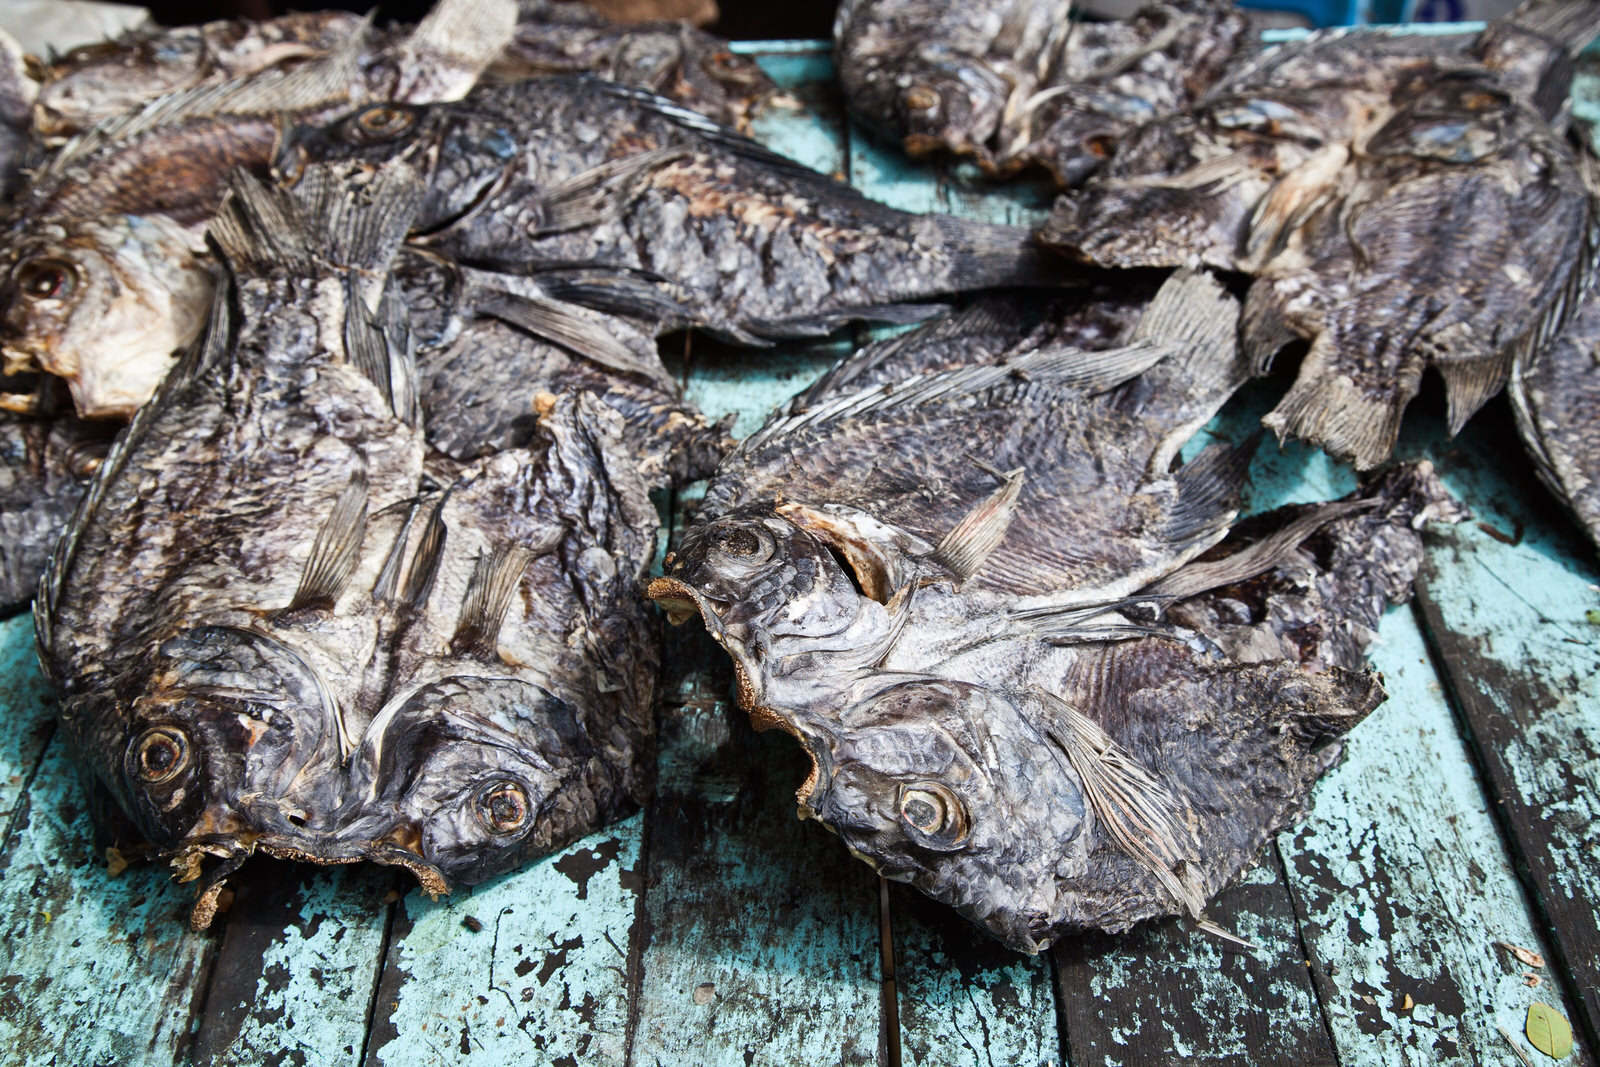 Dried tilapia from Lake Victoria - a common delicacy